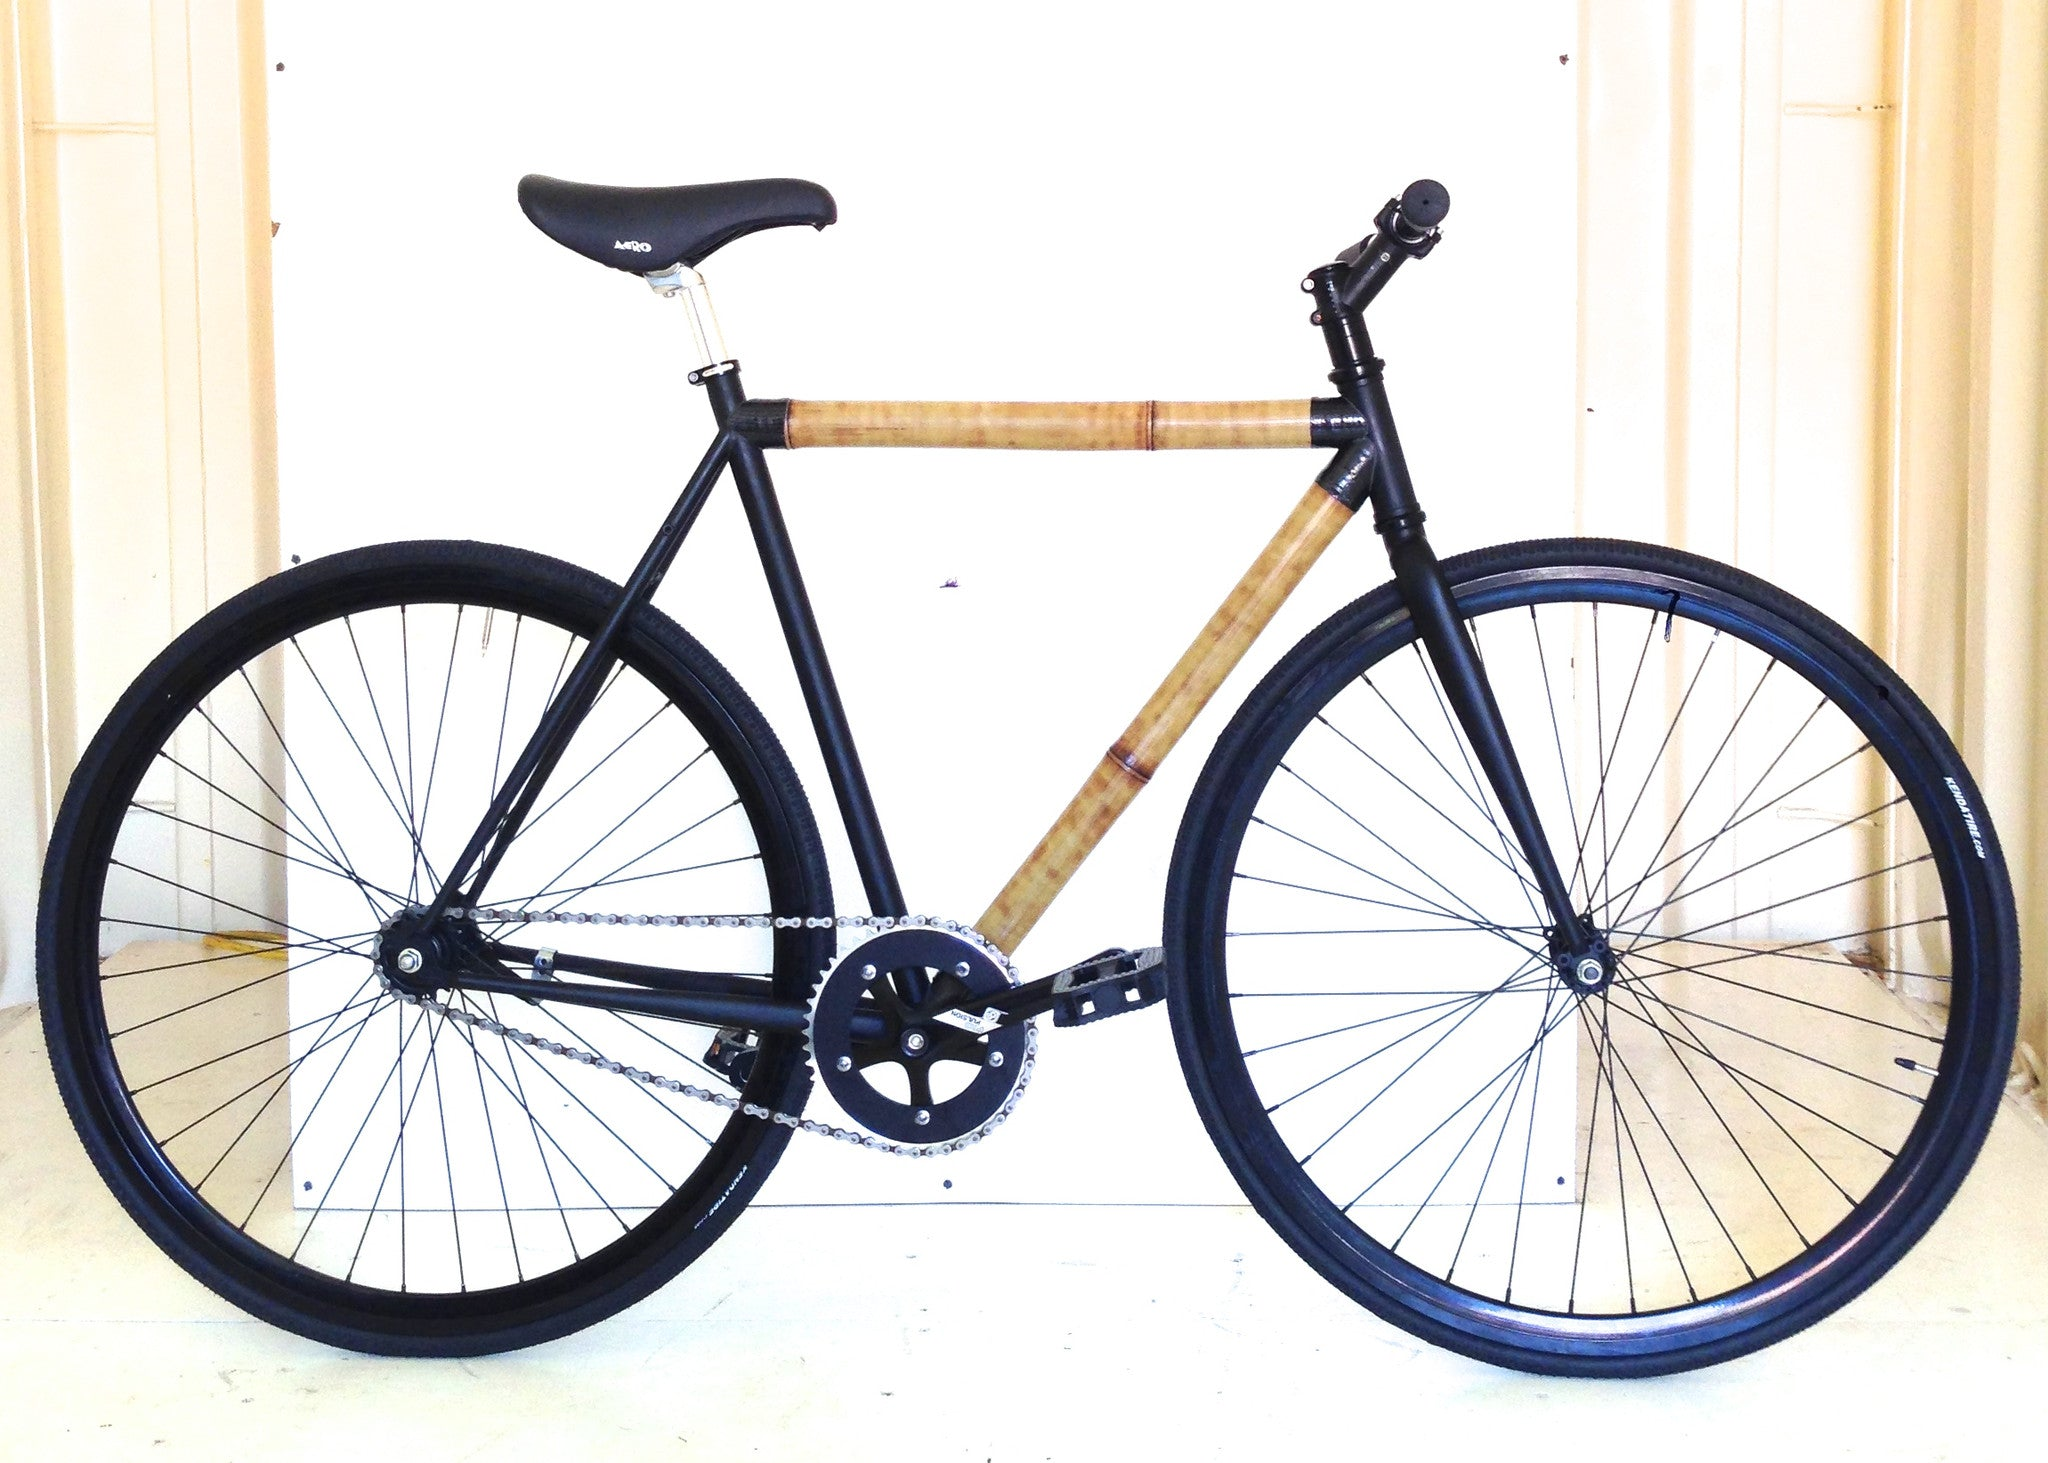 2-Whole Tube Bamboo Bike with carbon fiber tube ends